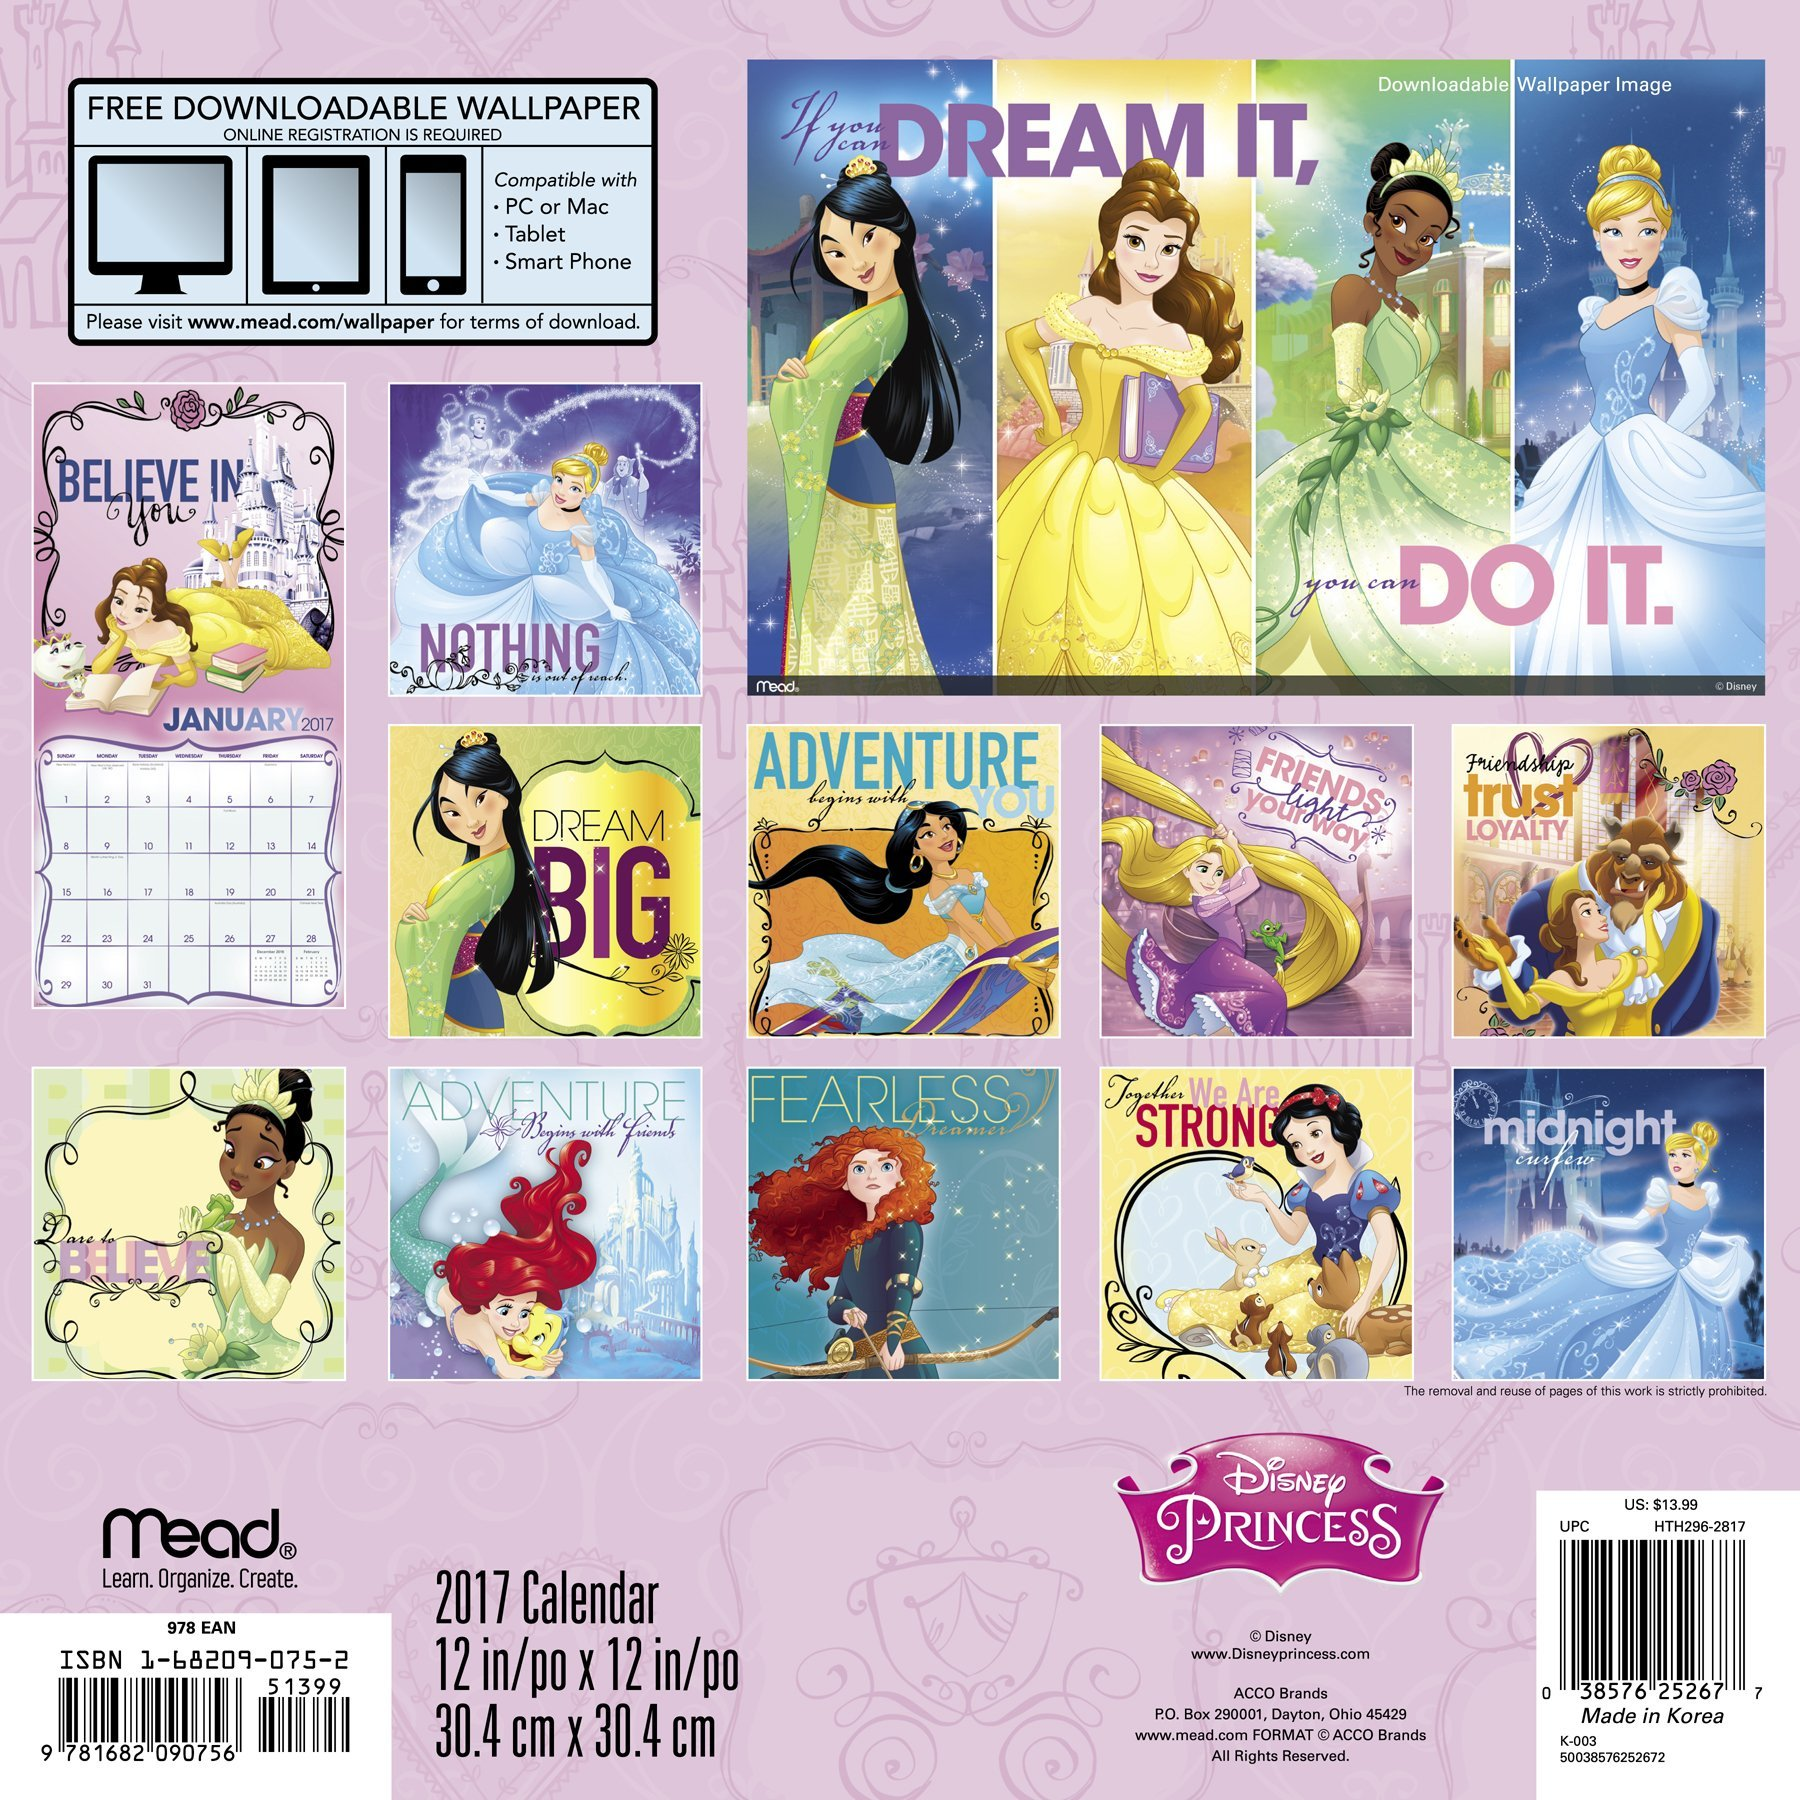 Disney Princess Wall Calendar